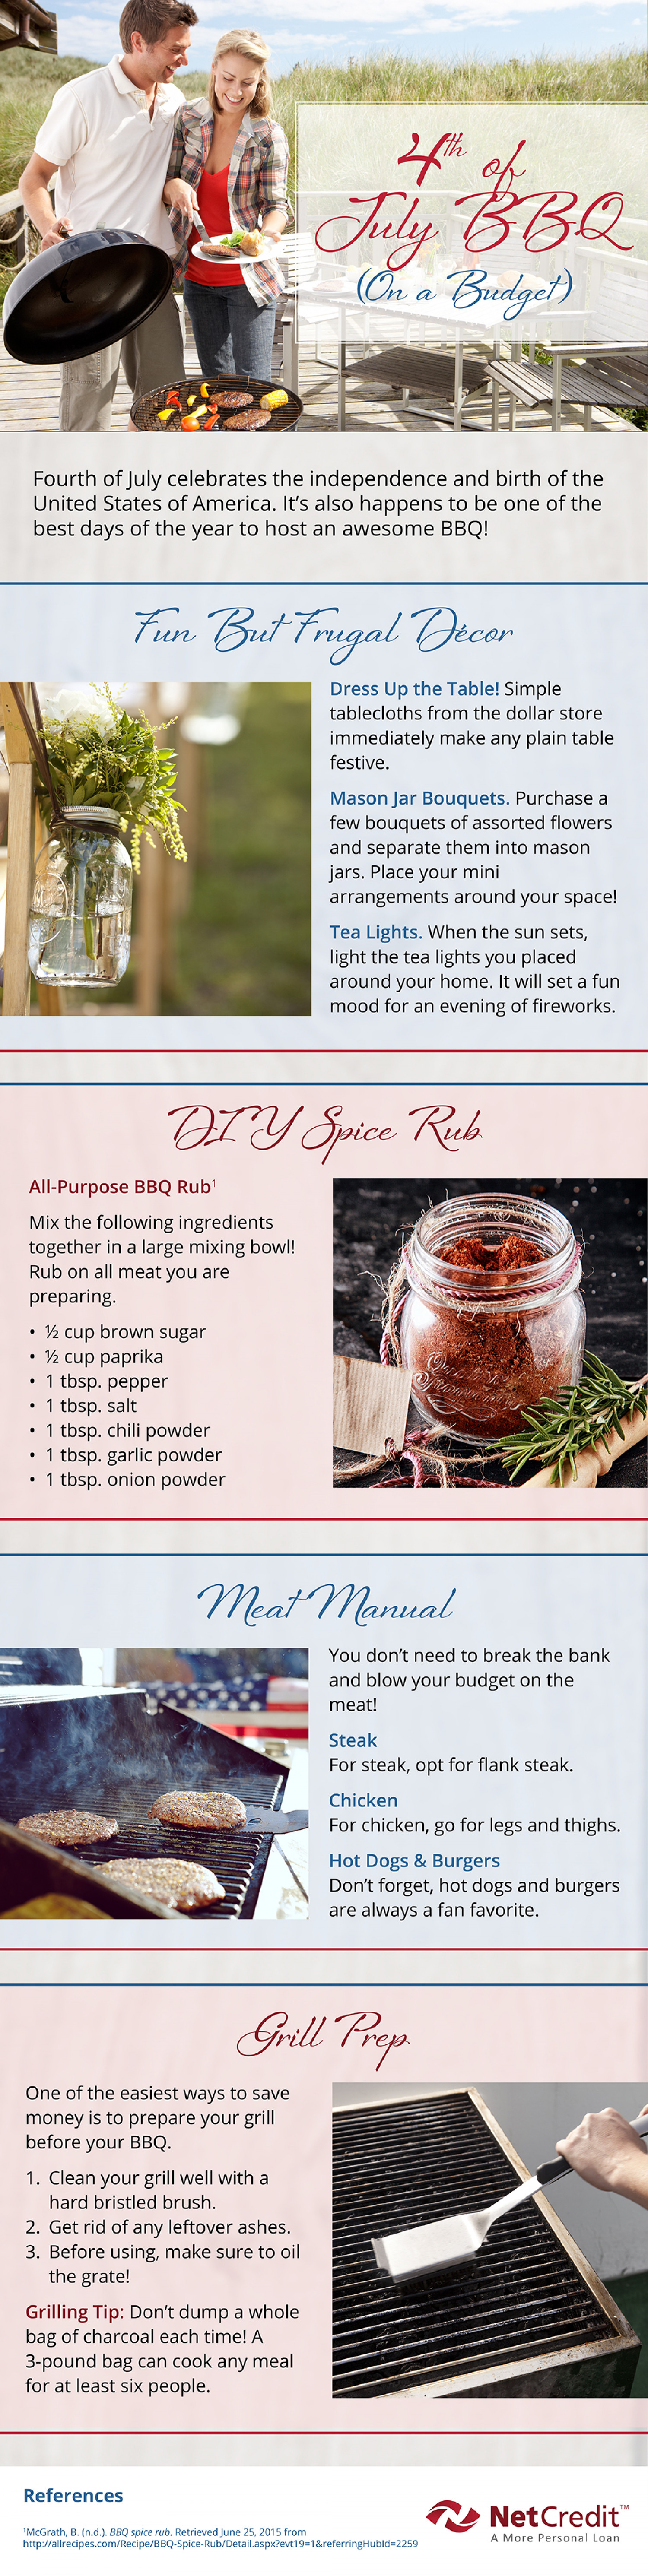 Fourth Of July BBQ On A Budget Infographic